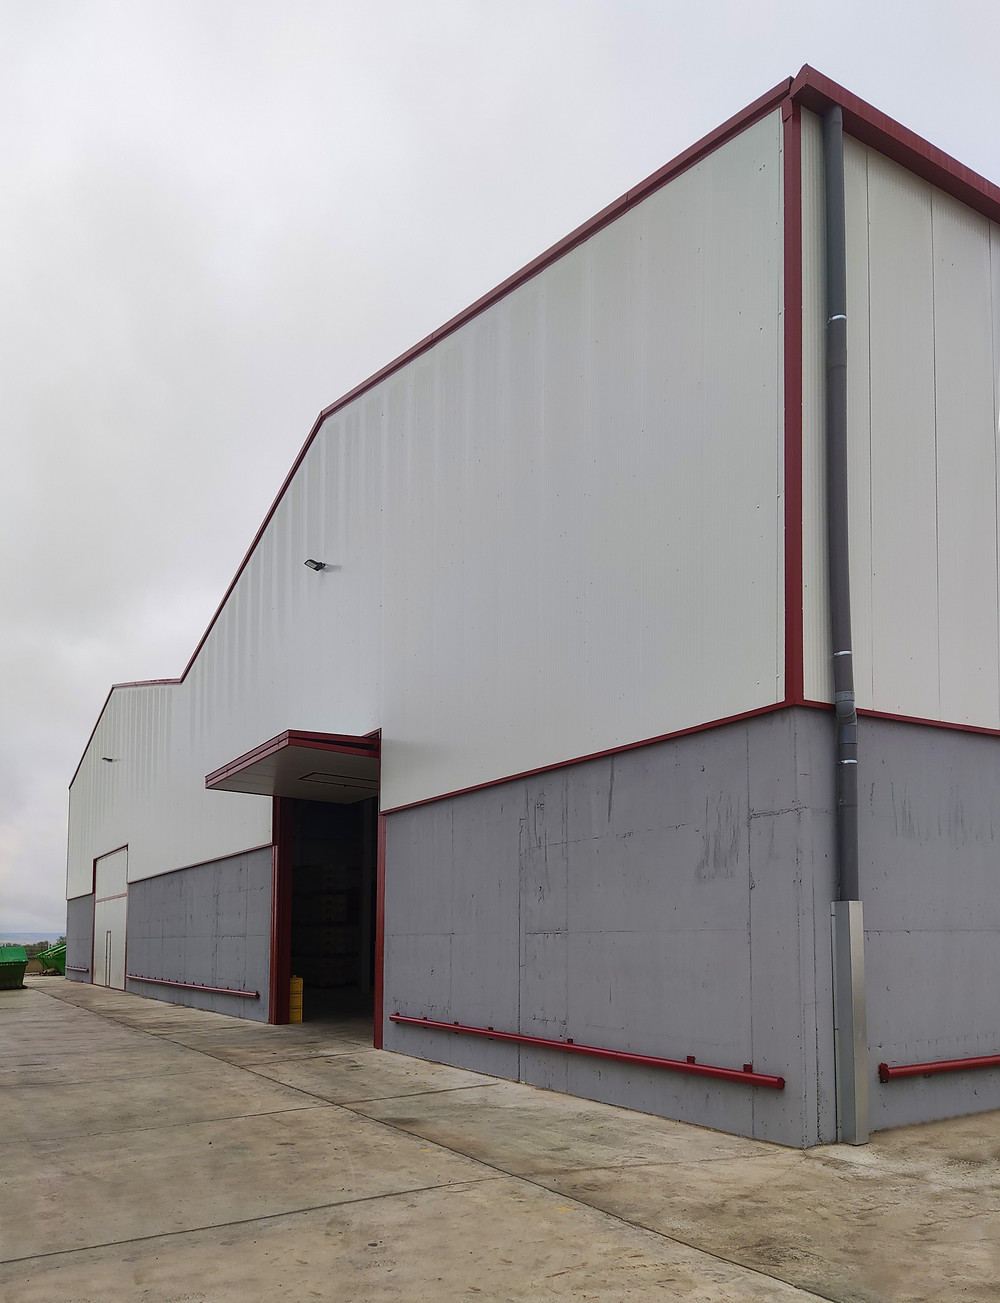 BMS Rioseco automotive plastic injection new warehouse expansion